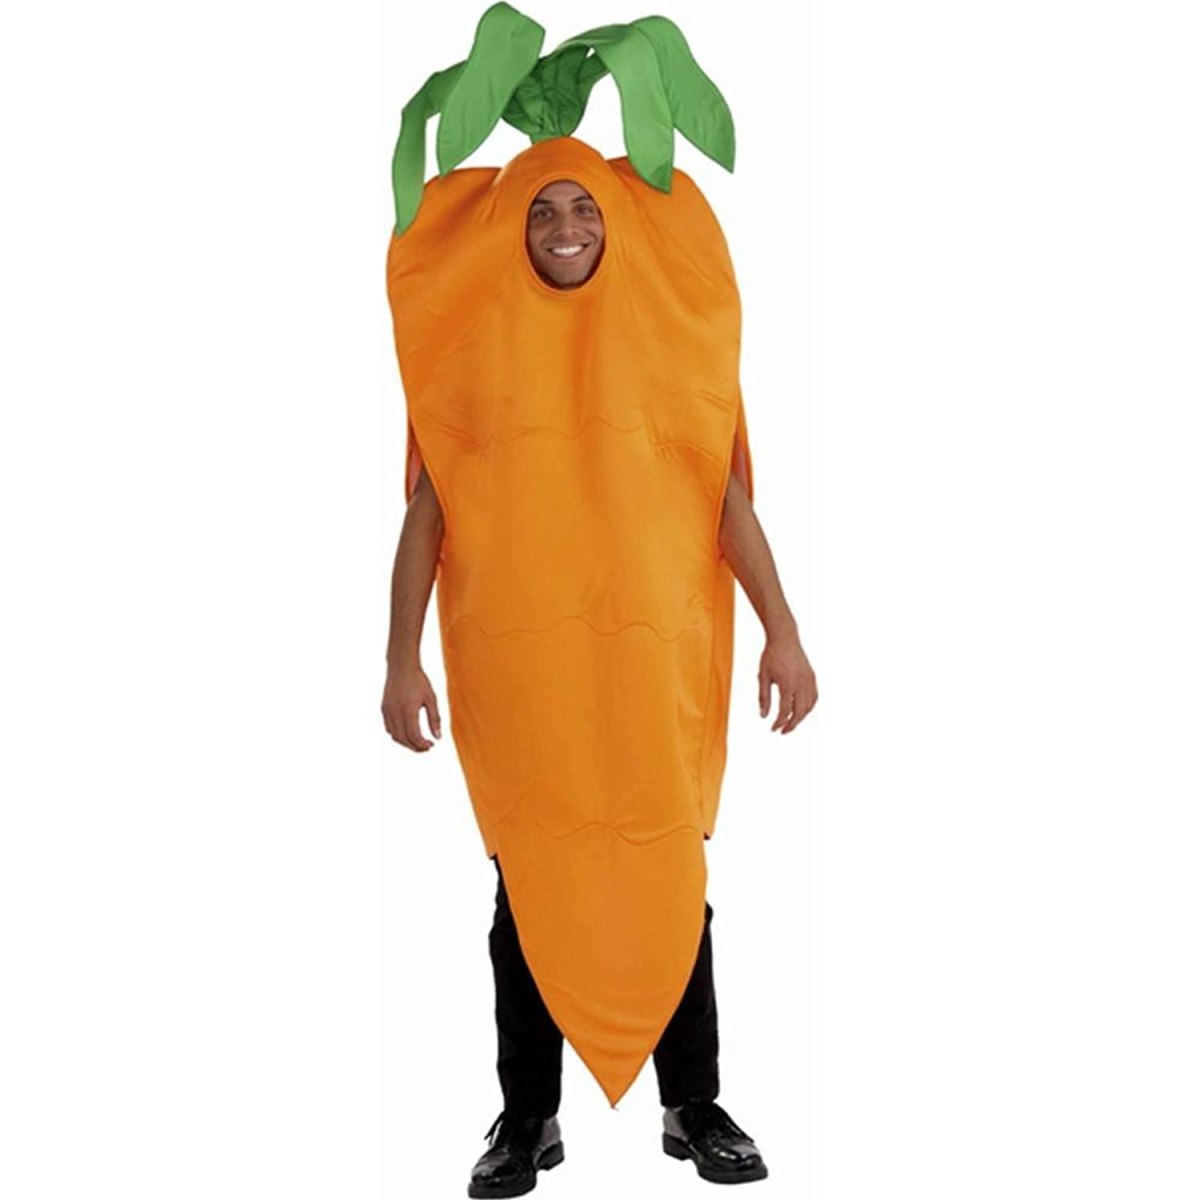 Forum Novelties - Adult Carrot Costume